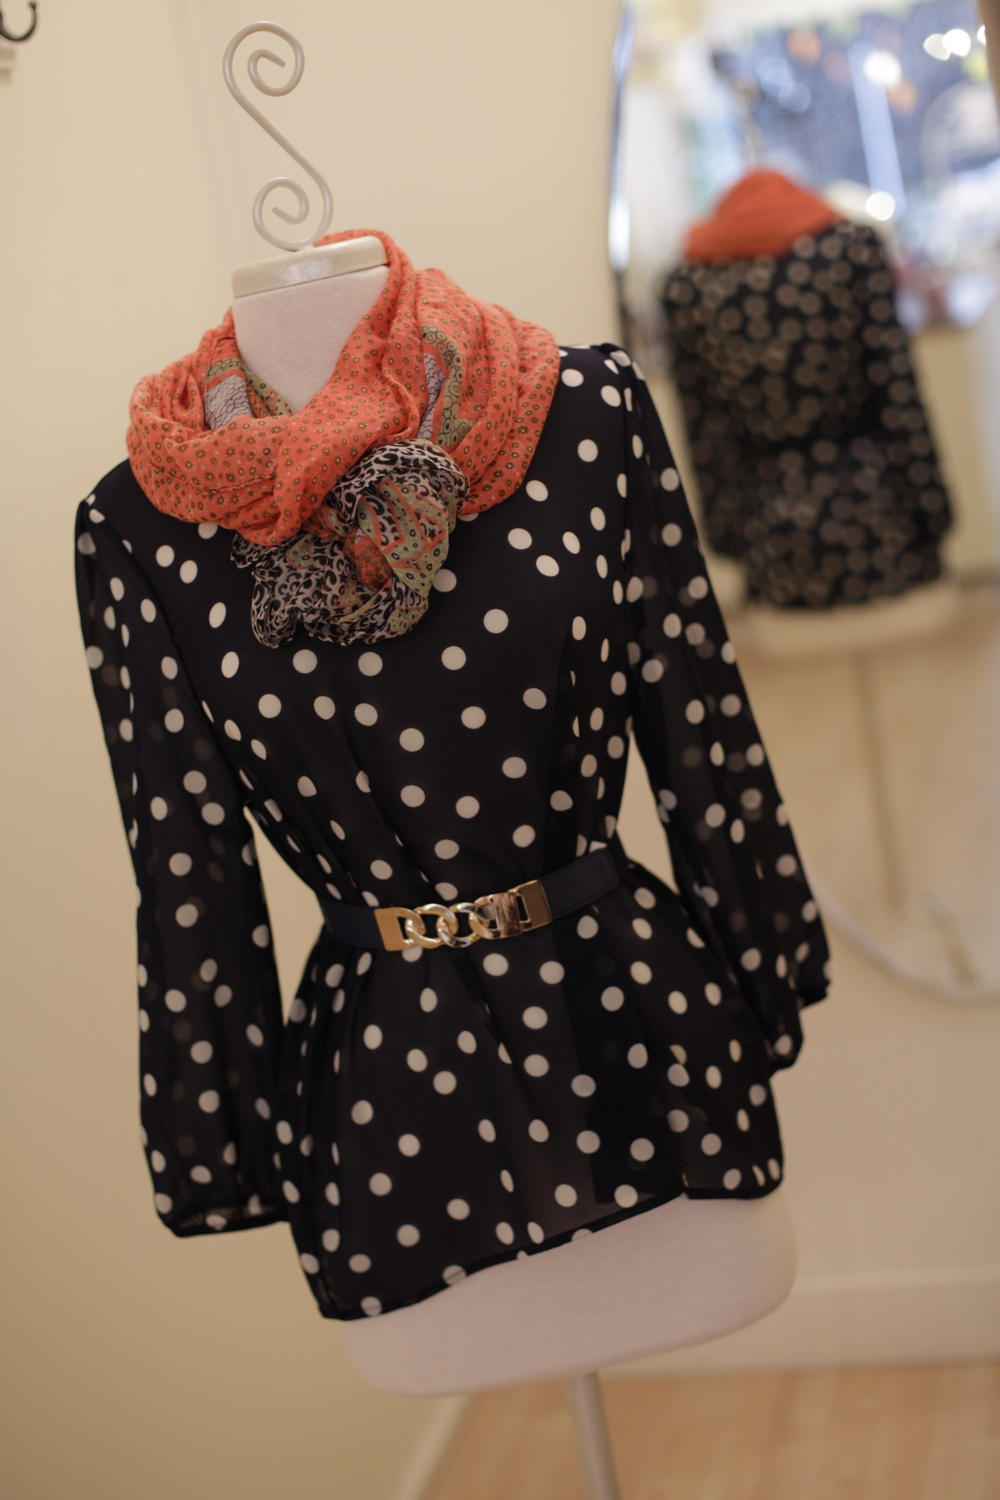 This adorable polka-dot blouse is loose fitting for a style that is  comfortable yet flattering and can be paired with a belt and scarf for a little extra glam. This top is flying off the shelves so hurry in so you don't miss it!